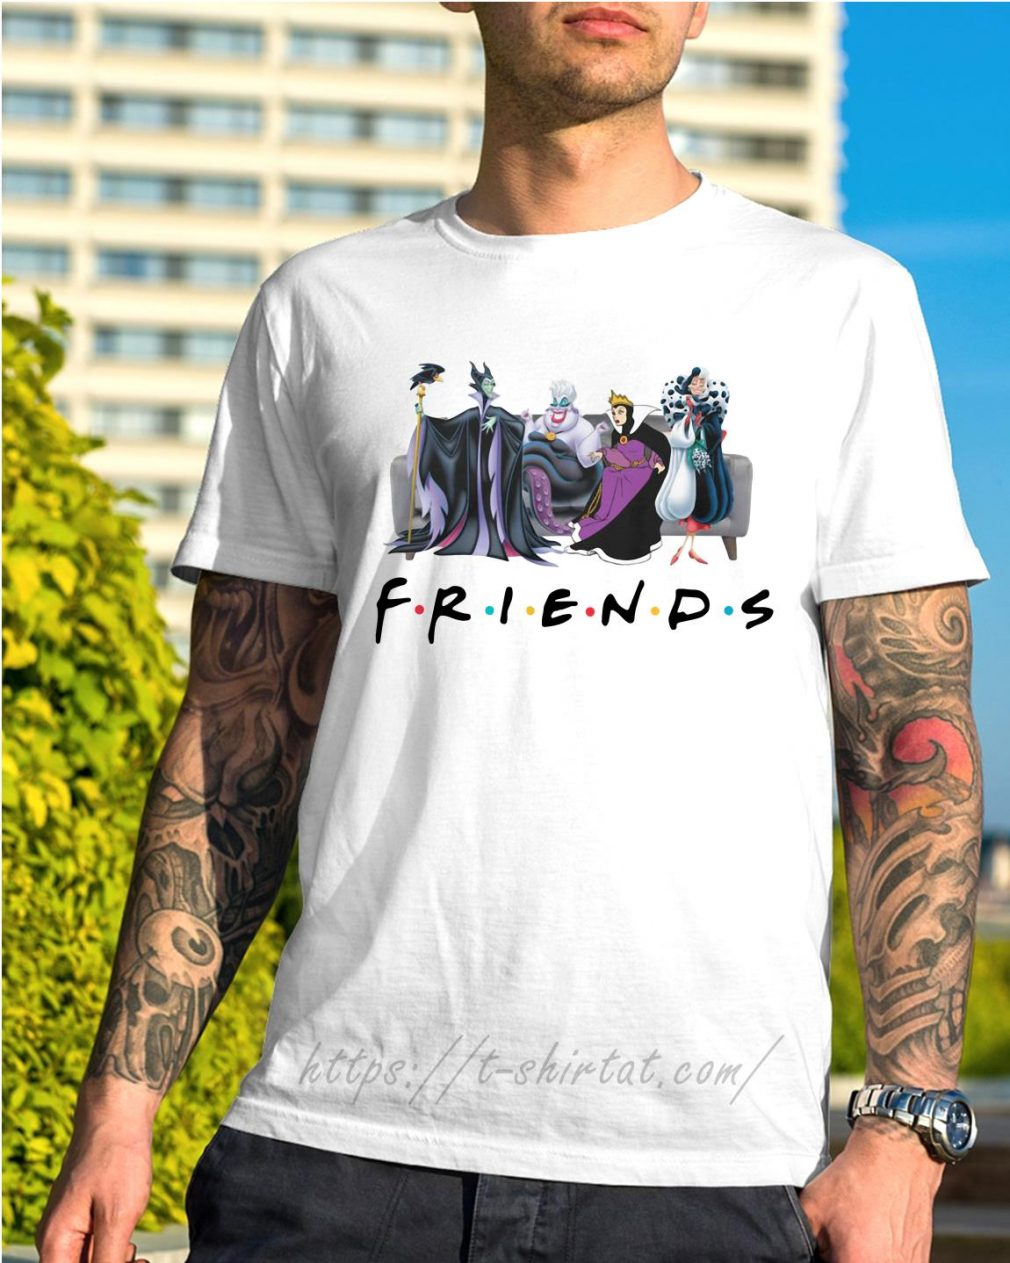 Disney Queens friends Cruella De Vil evil Queen Ursula maleficent shirtDisney Queens friends Cruella De Vil evil Queen Ursula maleficent shirt